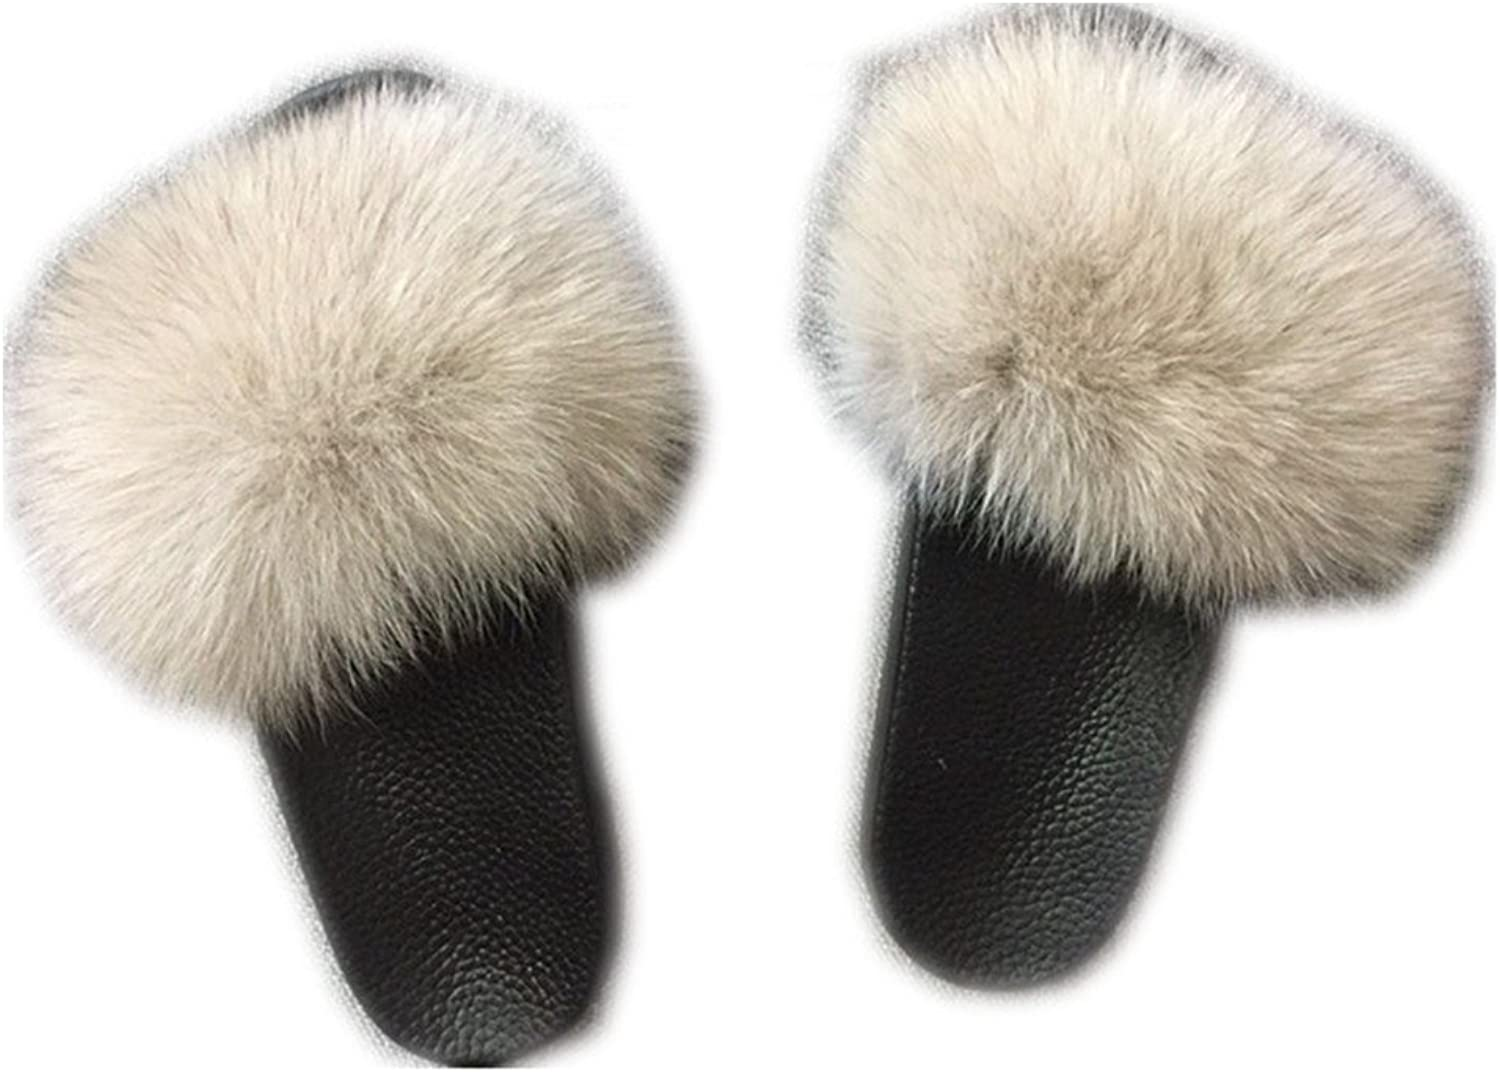 QMFUR Women Real Fox Slippers Fur Slides Open Toe Single Strap Slip On Sandals Black Sole (10, Cream-1)